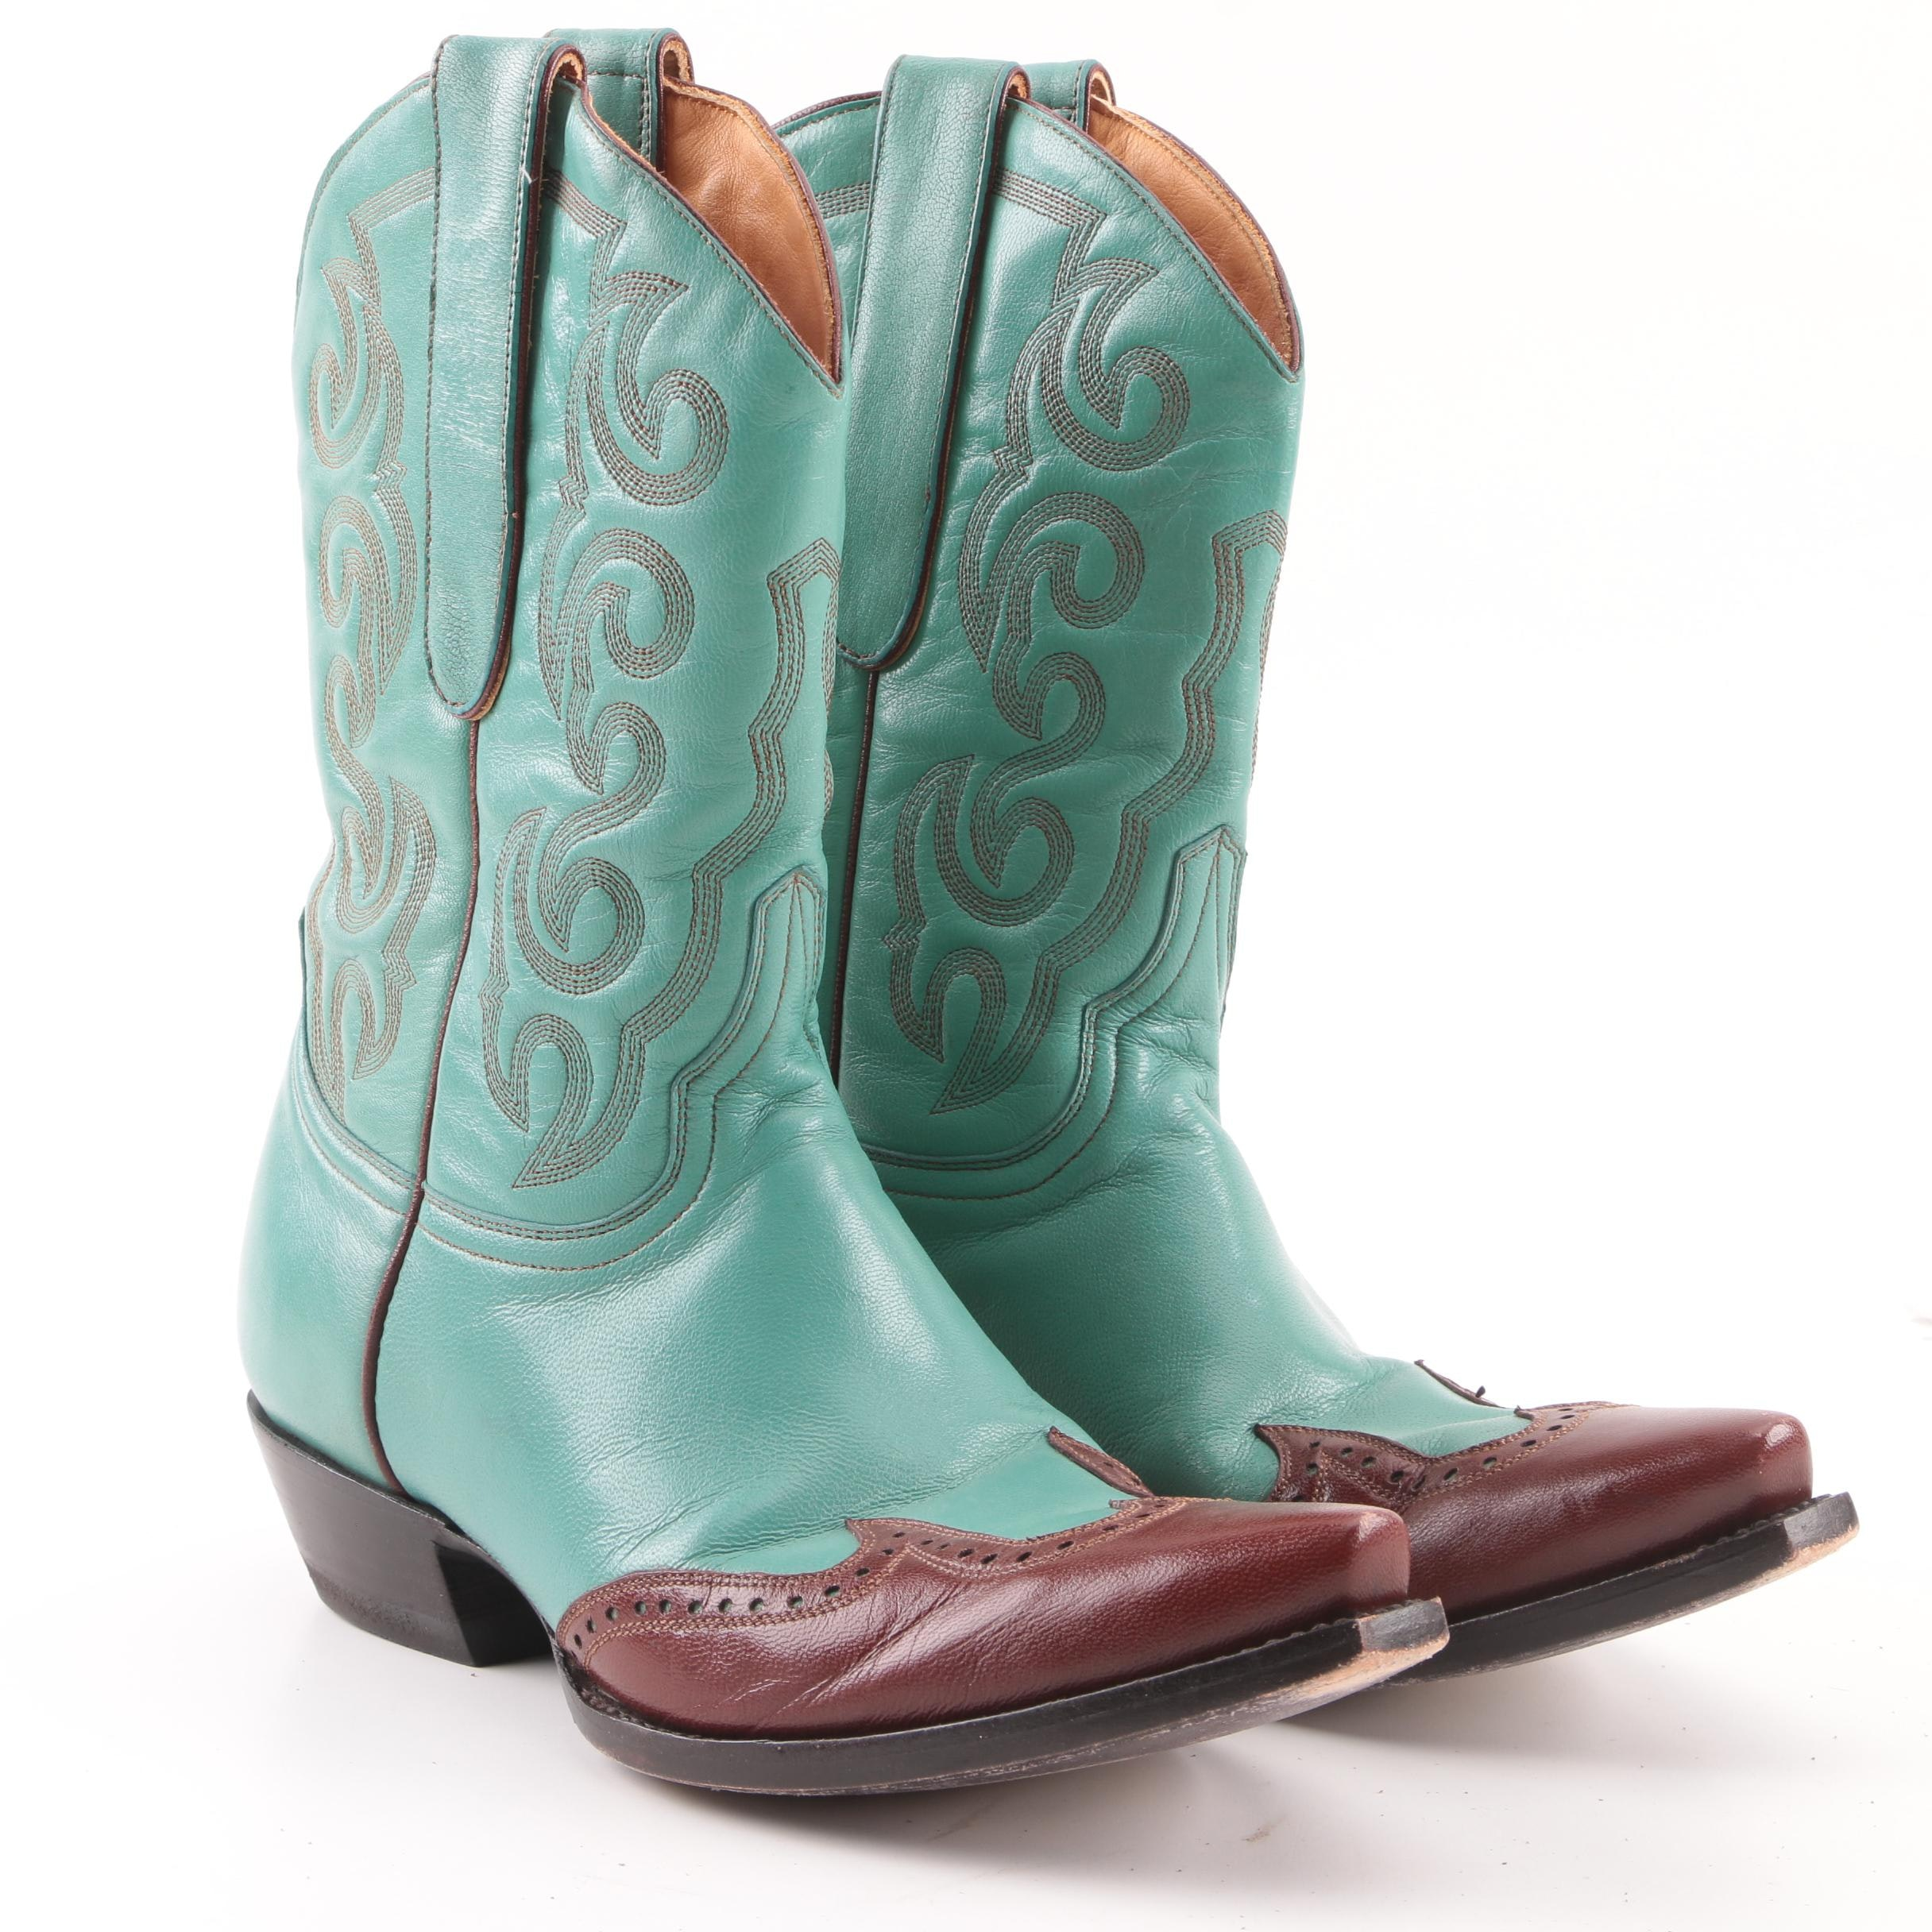 Women's The Old Gringo Brown and Turquoise Leather Western Boots